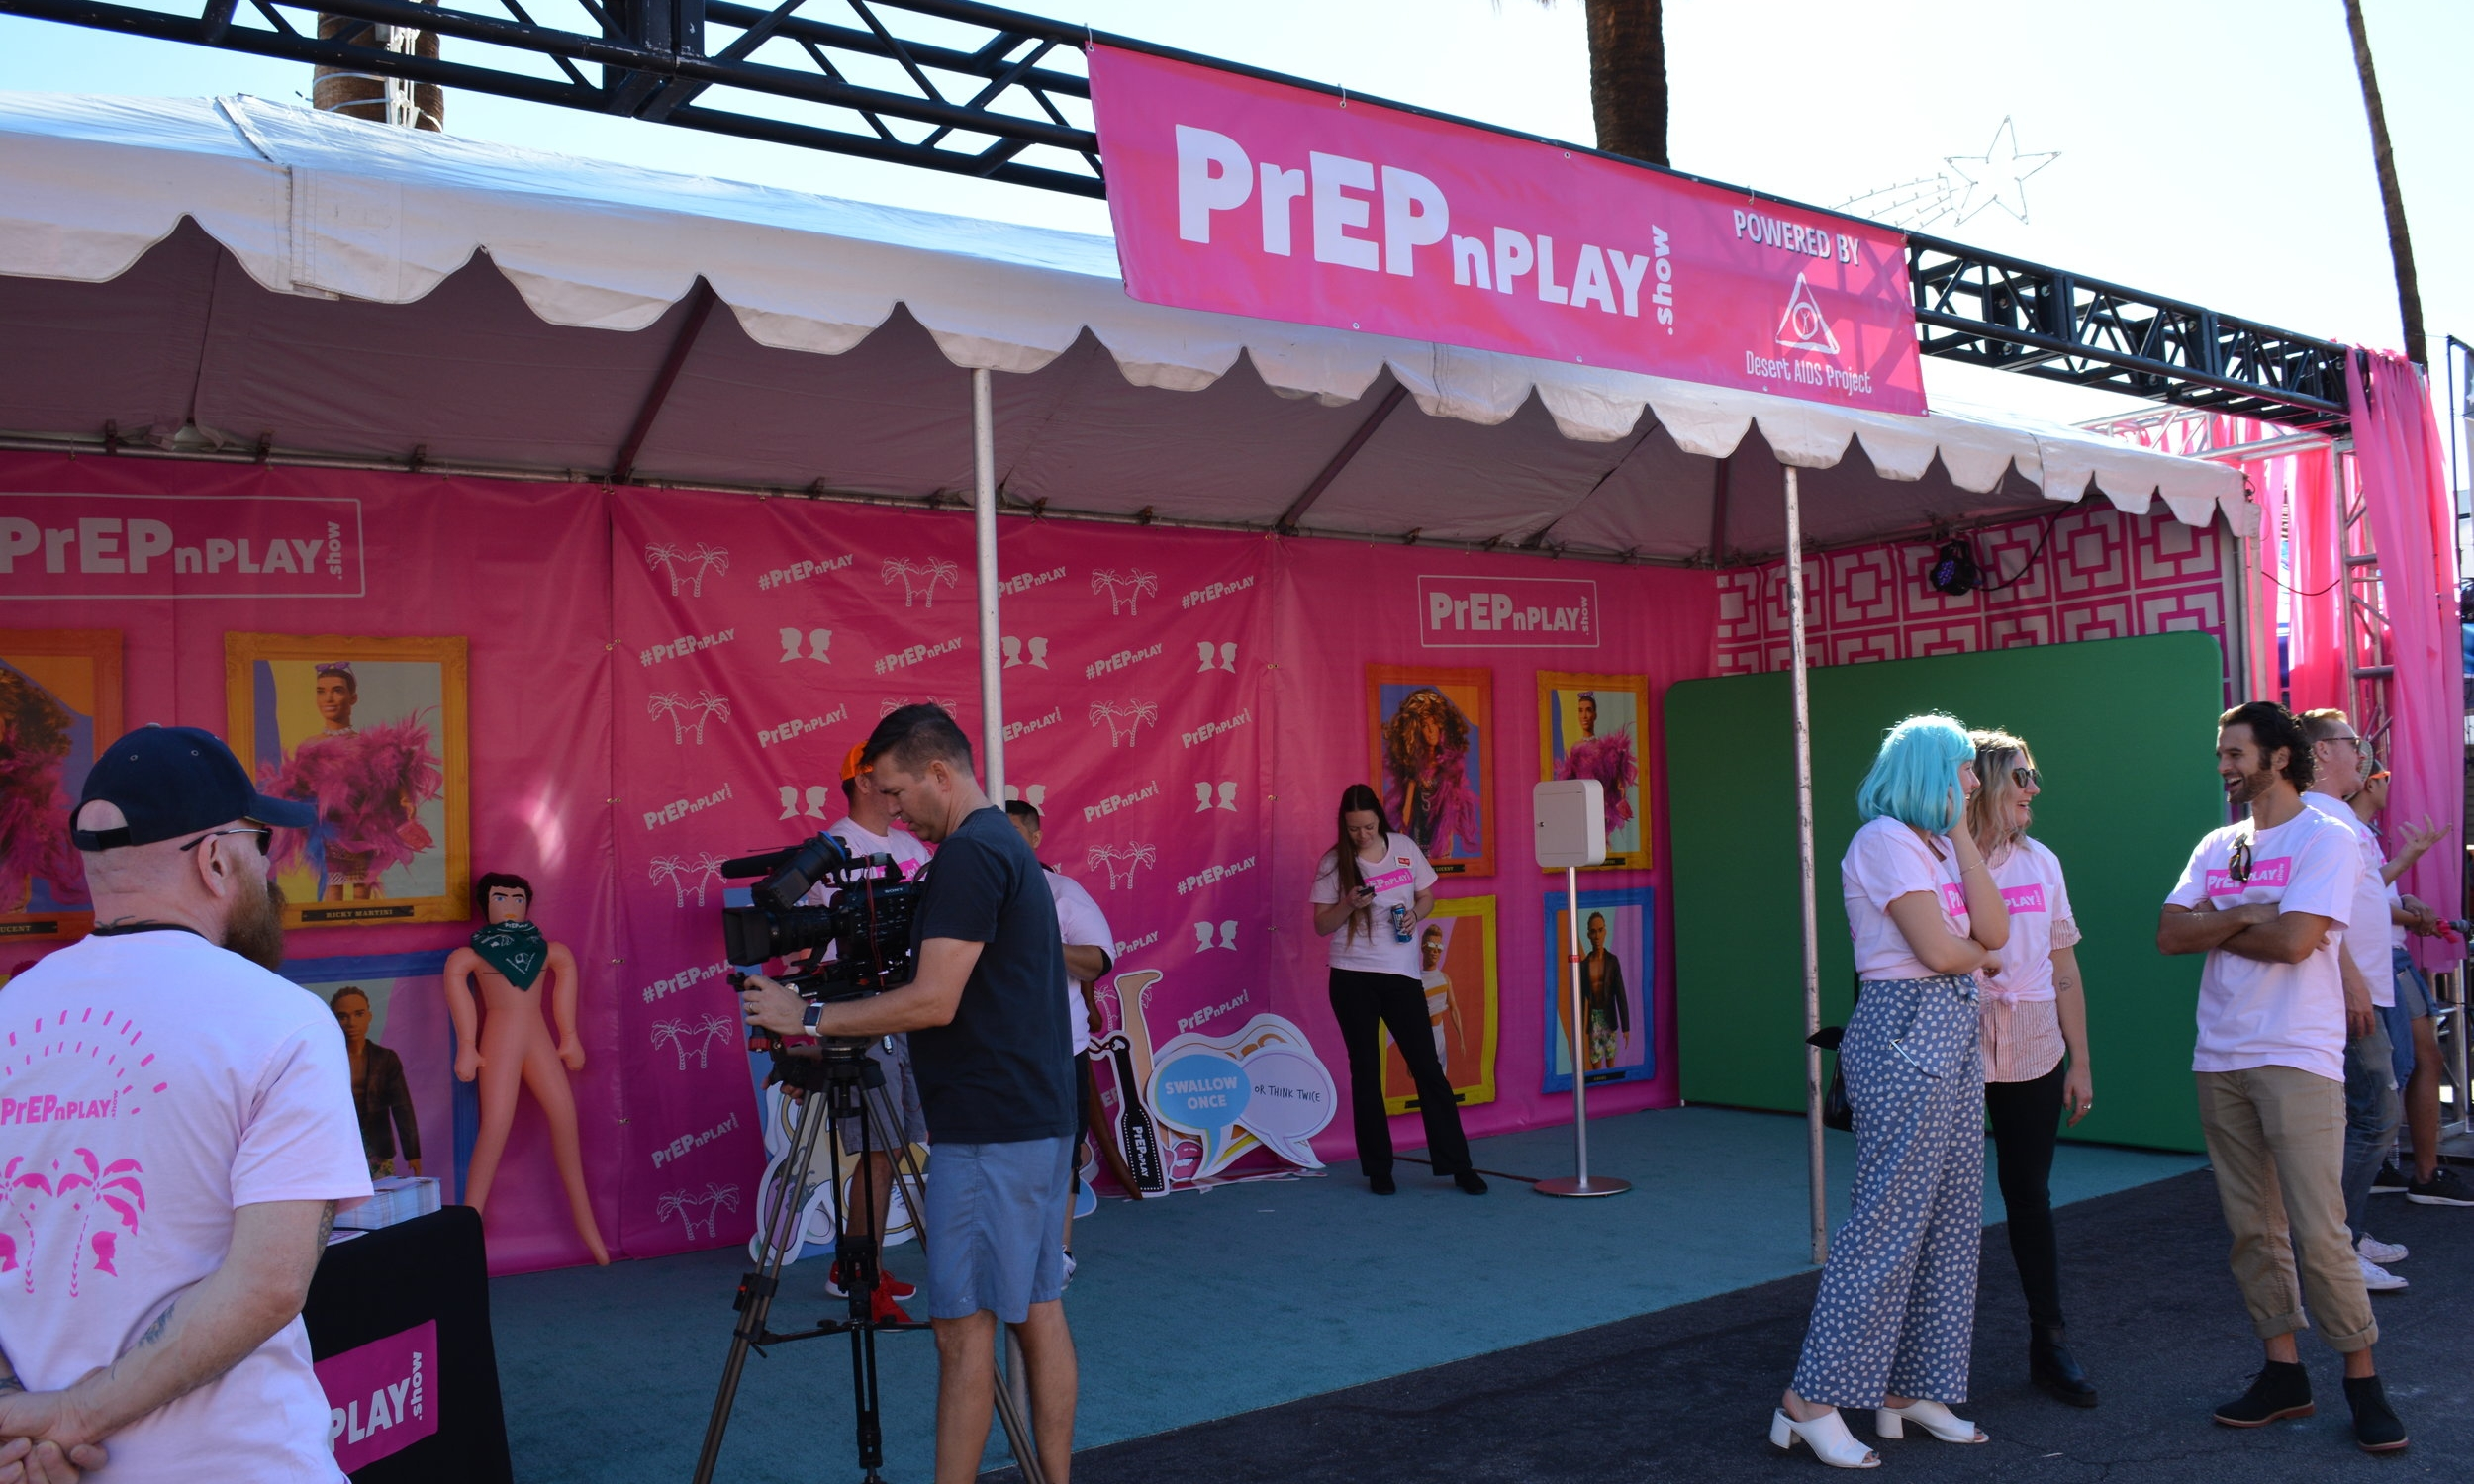 PrEP n' Play n' Pride    The Hydro team sets up shop at Gay Pride in Palm Springs and gets to work on promoting PrEPnPlay in the most fun way we can muster!